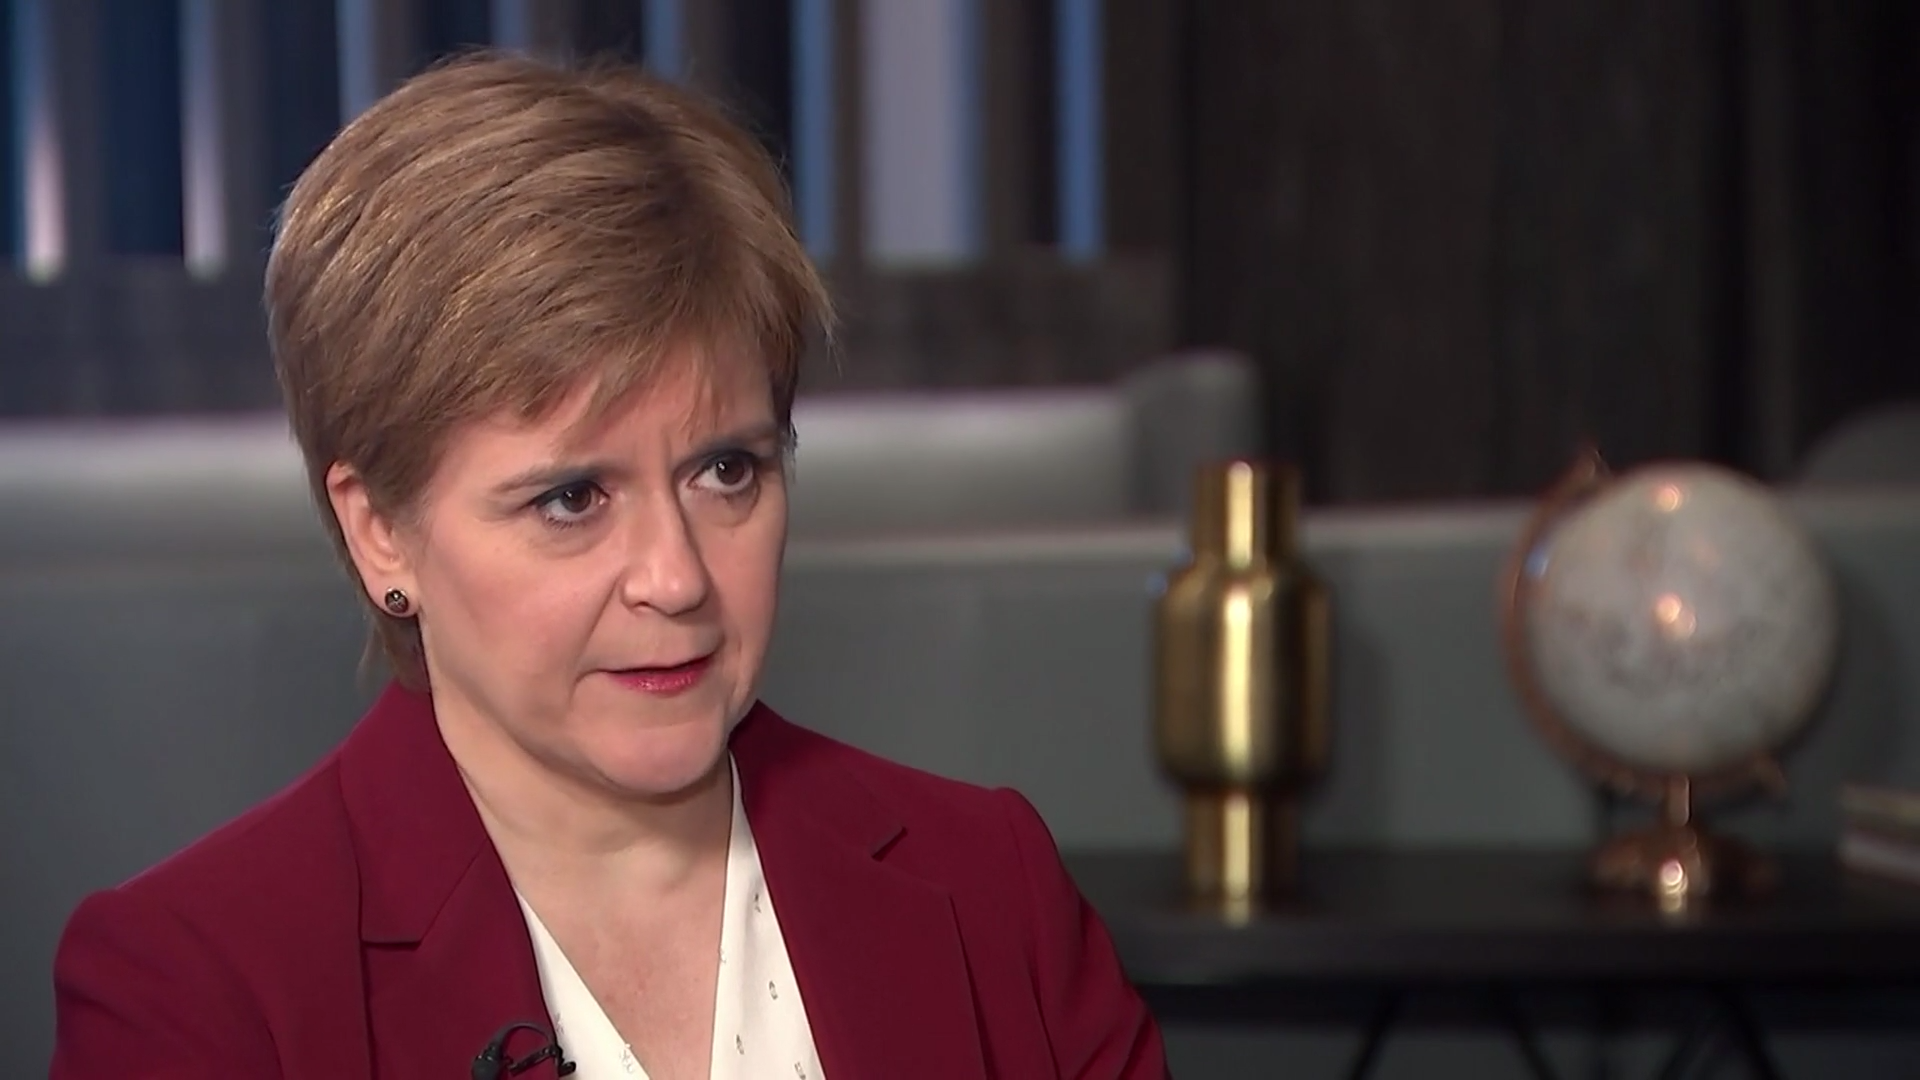 Nicola Sturgeon: 'the case for Scottish independence has never been more compelling'